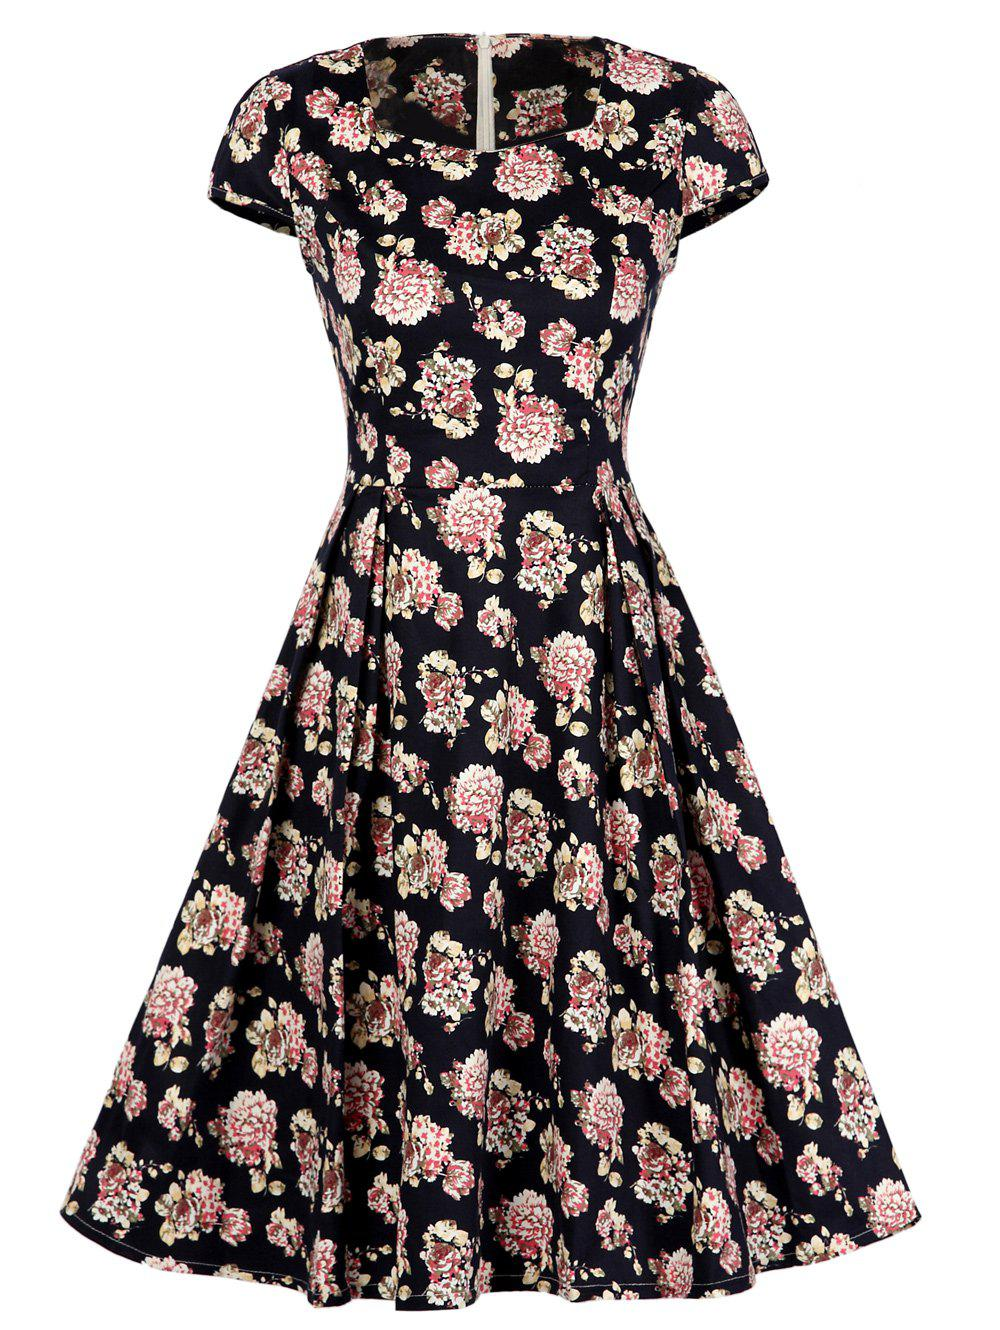 Square Collar Floral Print Vintage Swing Dress - FLORAL M